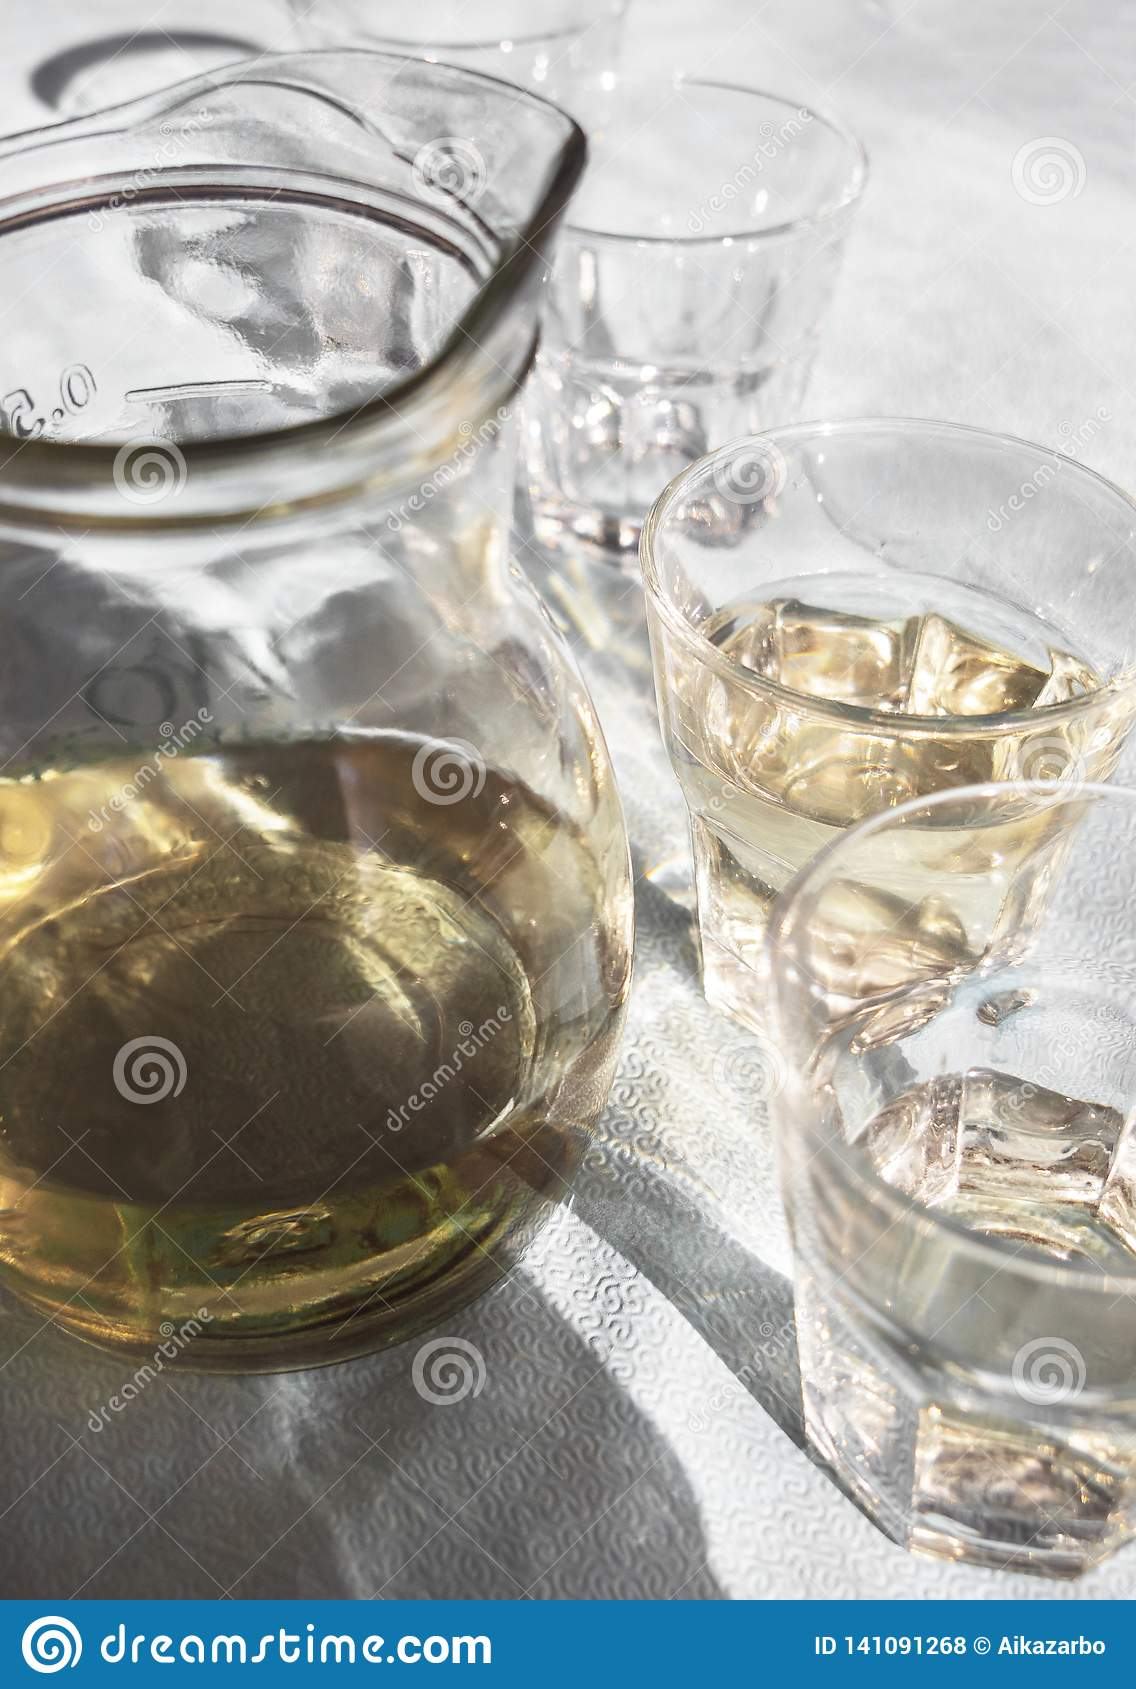 Decanter and glasses filled with homemade white Greek wine, on the table in a tavern in the sunlight and with beautiful shadows